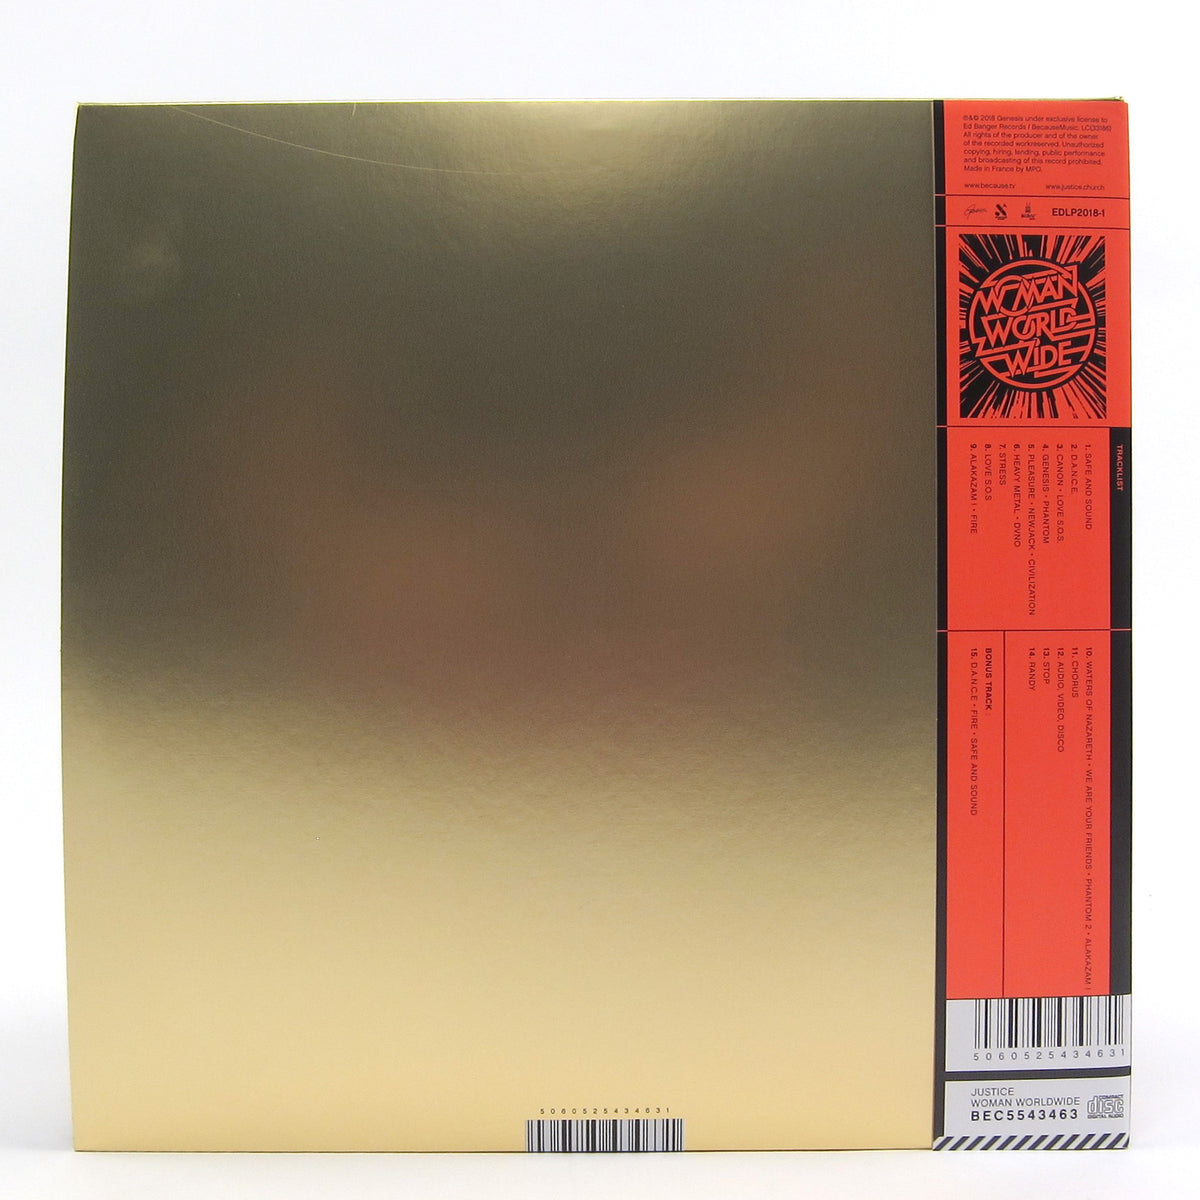 Justice: Woman Worldwide Vinyl 3LP+2CD